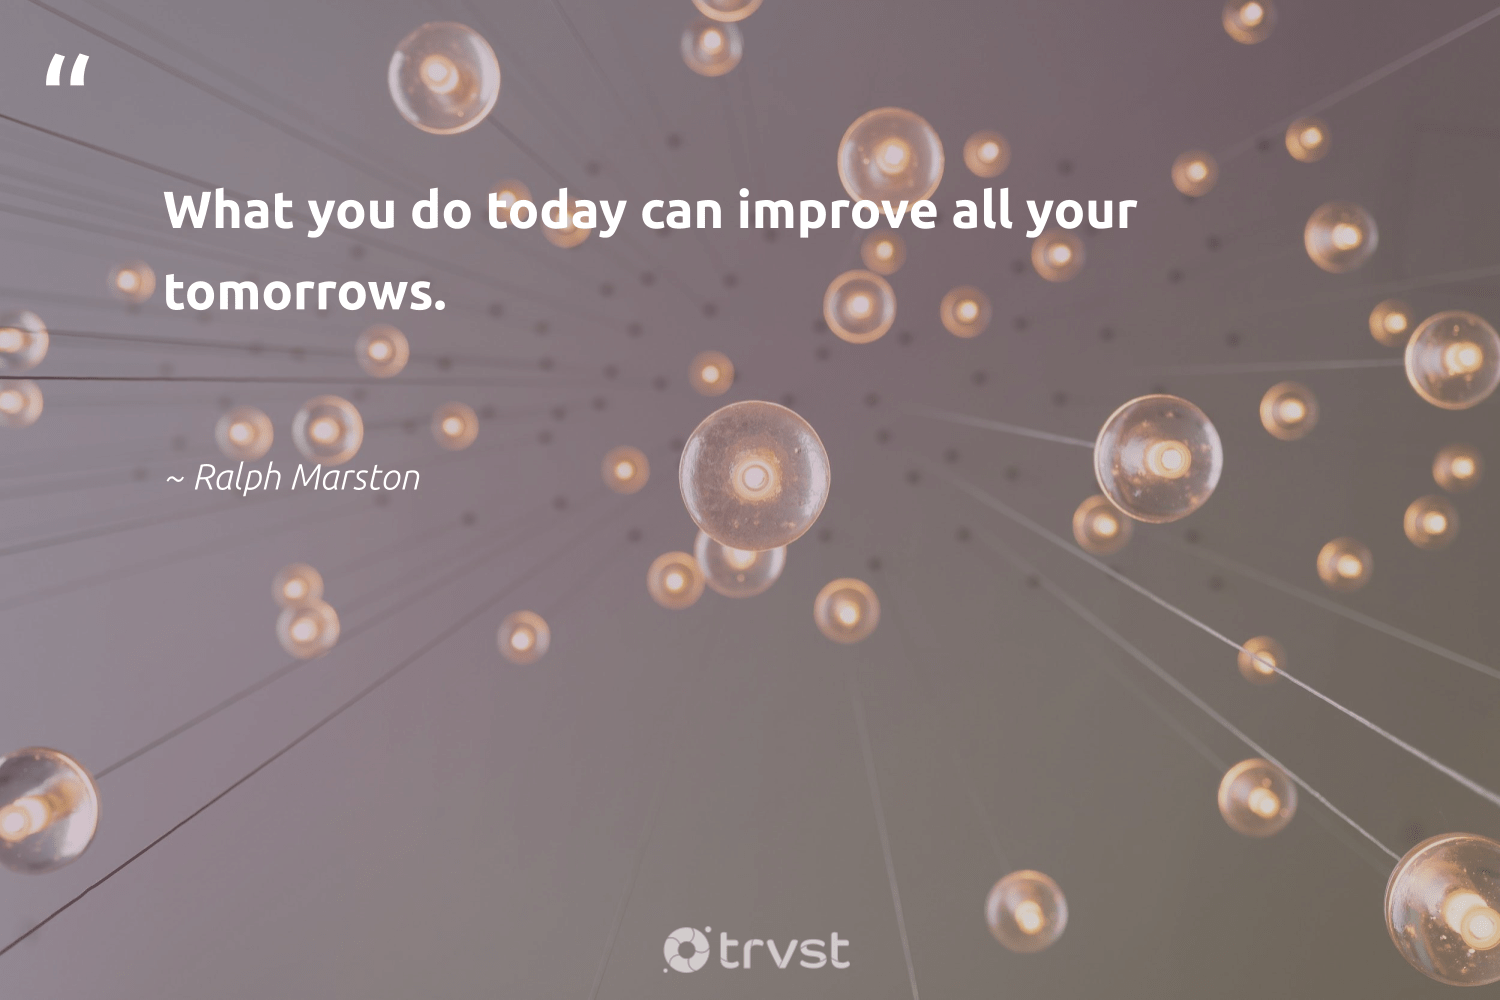 """What you do today can improve all your tomorrows.""  - Ralph Marston #trvst #quotes #nevergiveup #planetearthfirst #futureofwork #bethechange #begreat #impact #softskills #dogood #socialchange #dosomething"